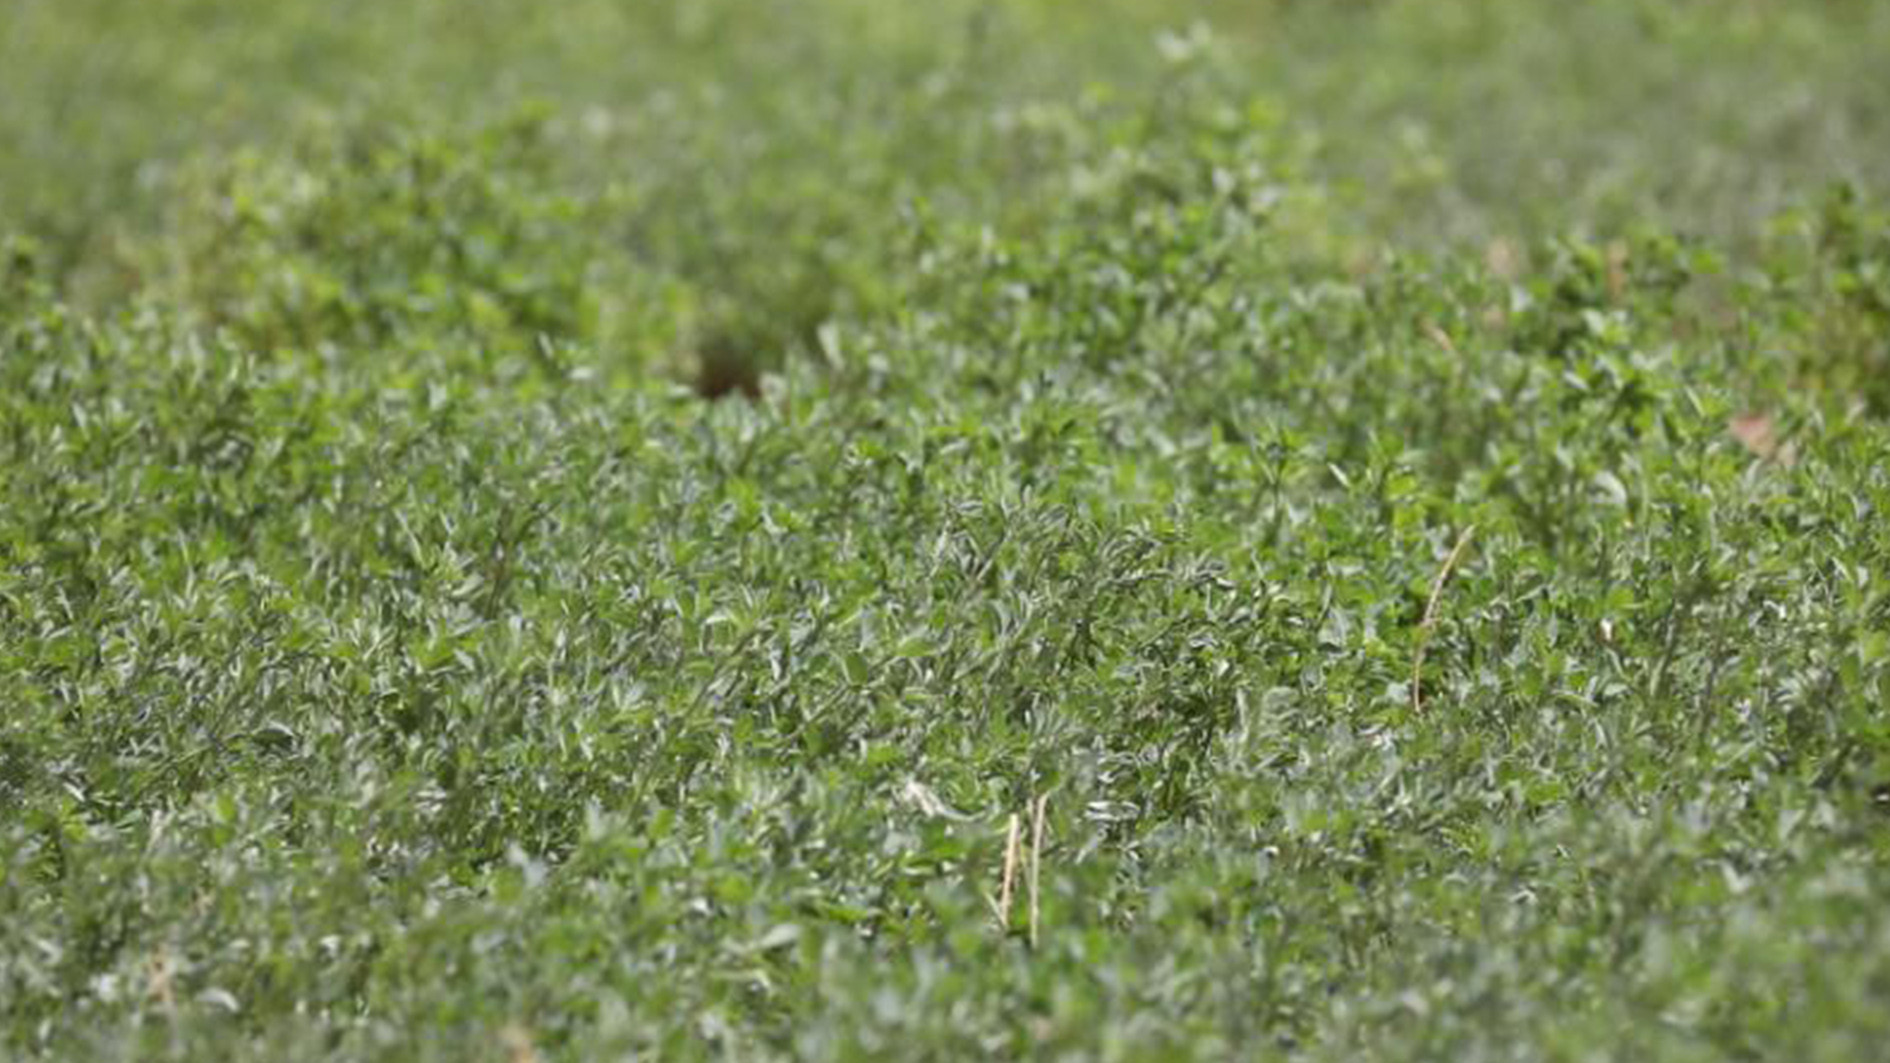 Chinese Holstein cows, alfalfa plants combat desertification in West Africa